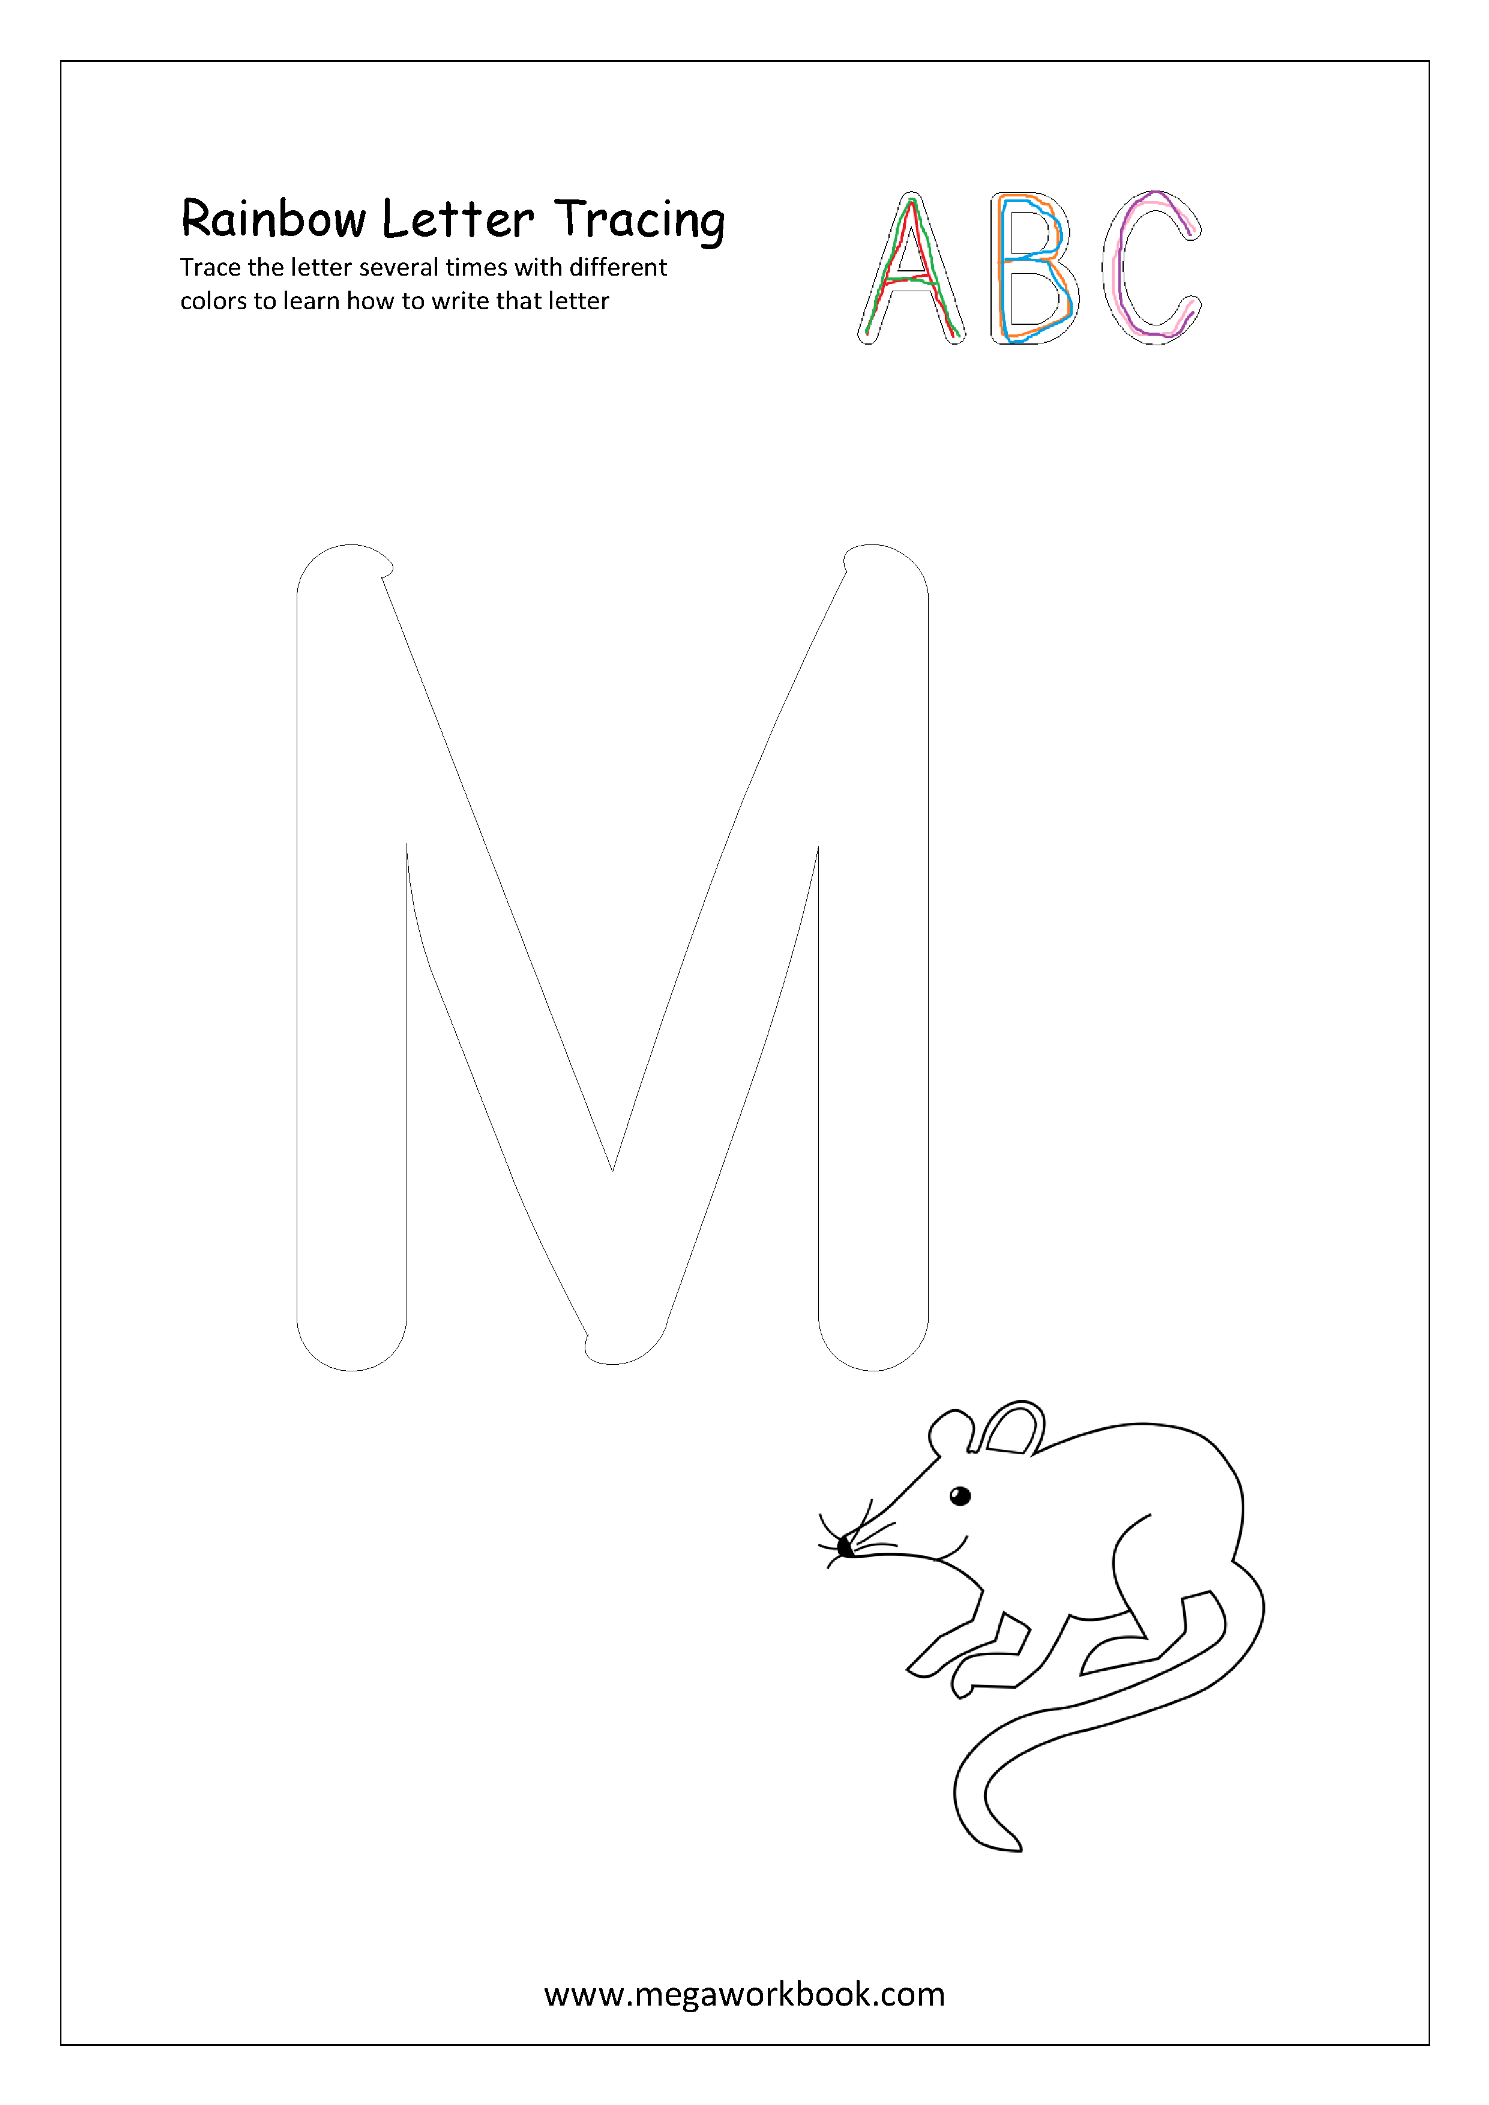 Free Printable Rainbow Writing Worksheets